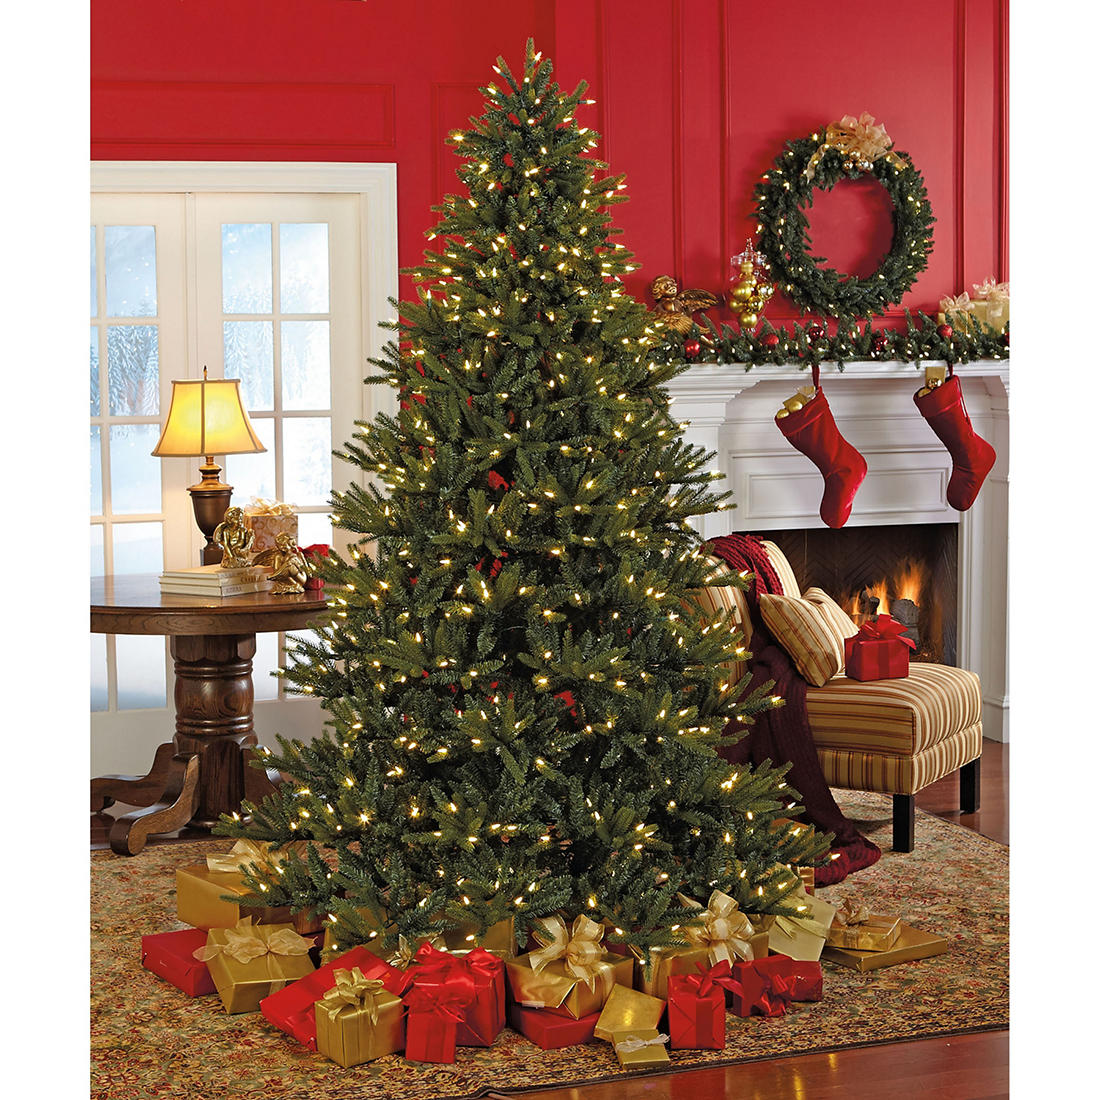 Sylvania 7 5 8 Function Color Changing Prelit Led Tree With Foot Pedal Bjs Wholesale Club